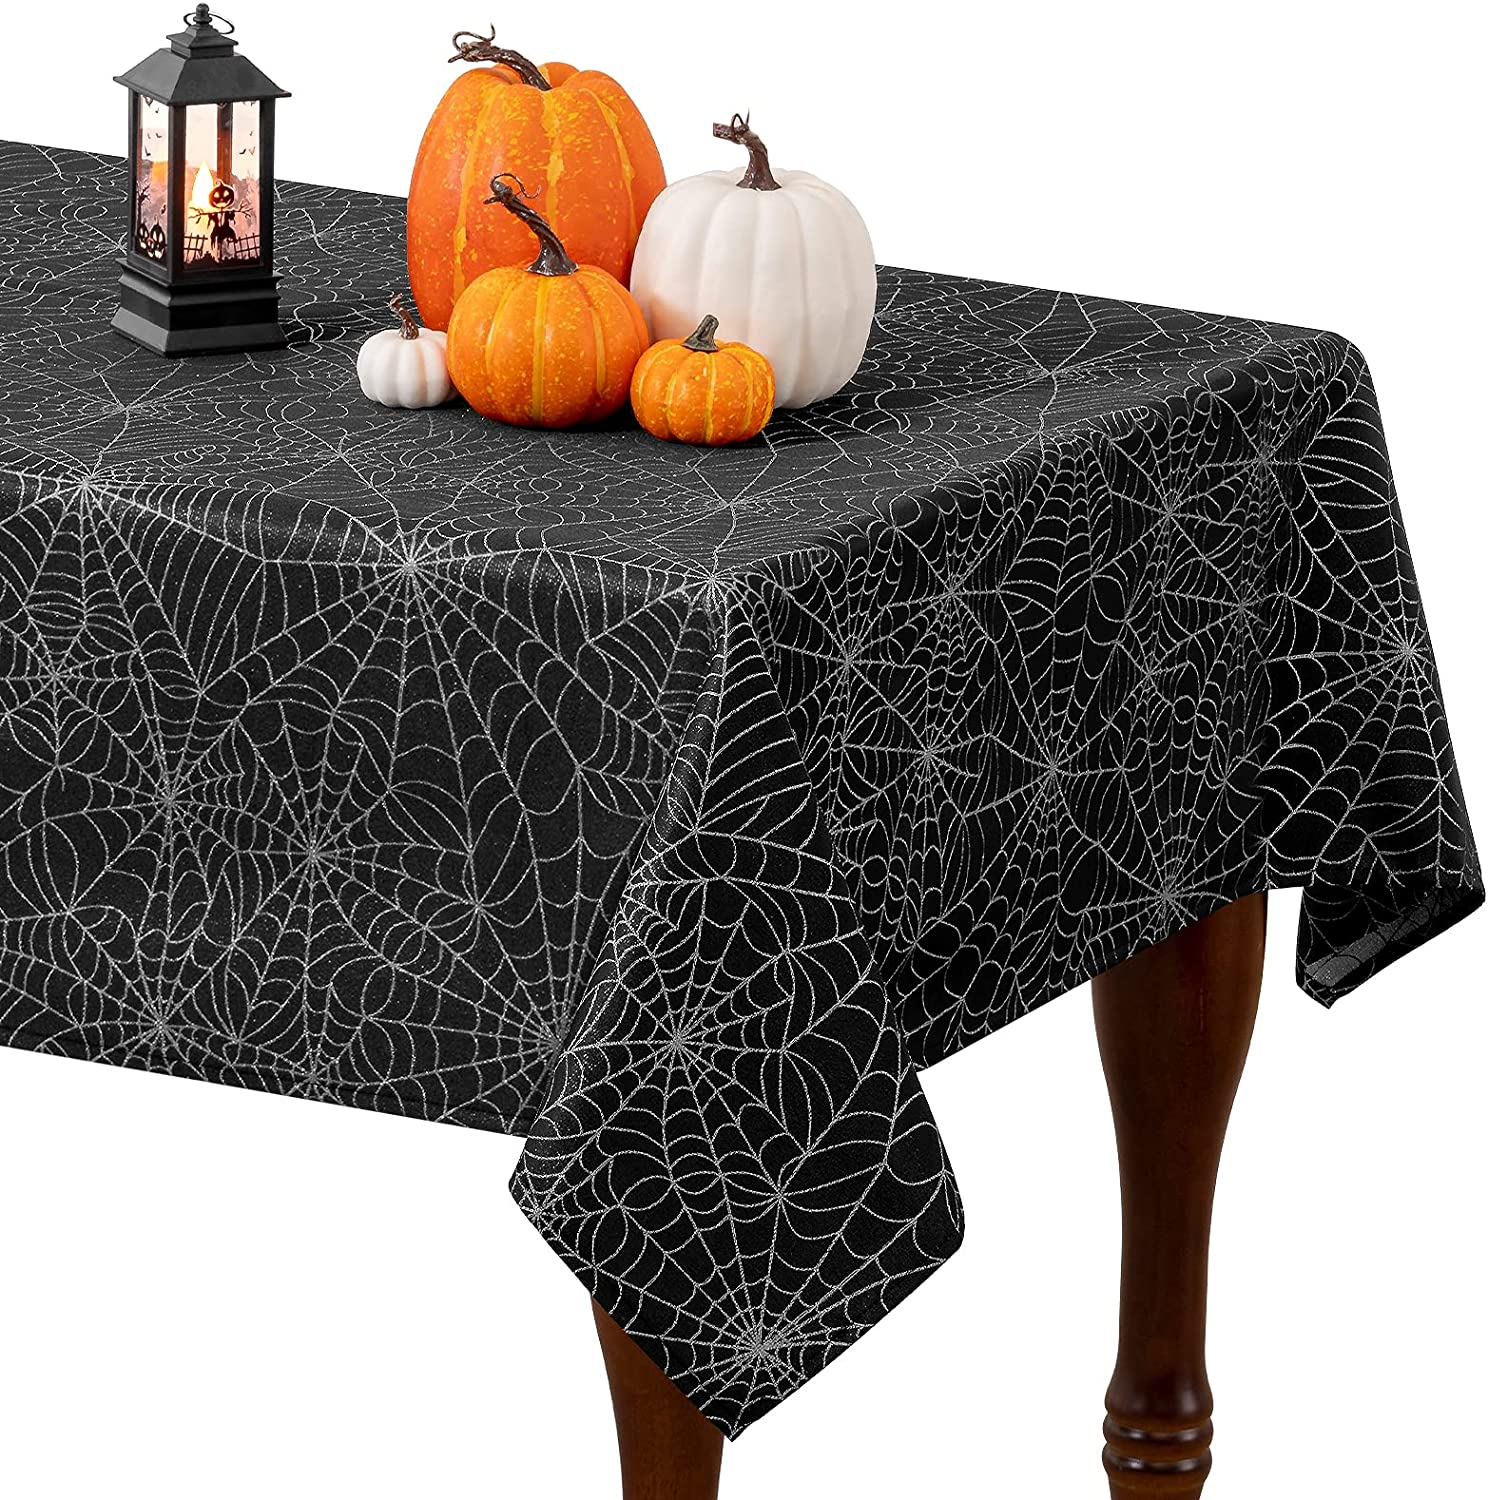 Halloween Tablecloth Free shipping anywhere in the nation Spider Web Nashville-Davidson Mall Twinkle Cloth Sp Metallic Table